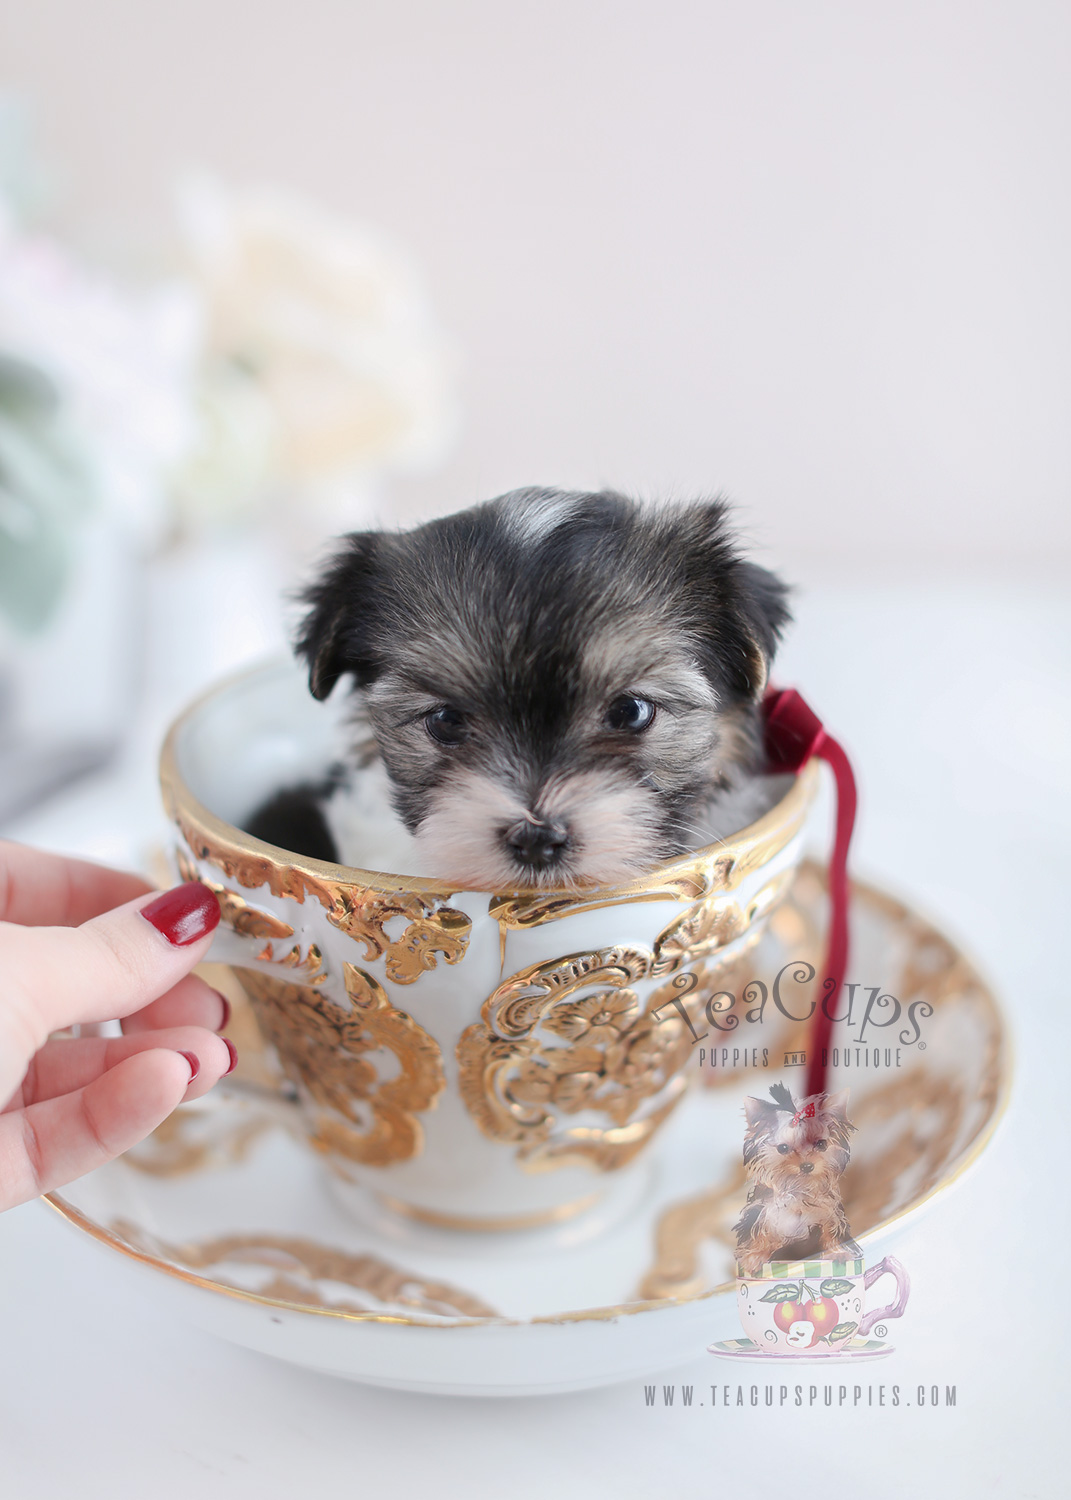 Biewer Terrier Puppies For Sale Teacups Puppies Amp Boutique